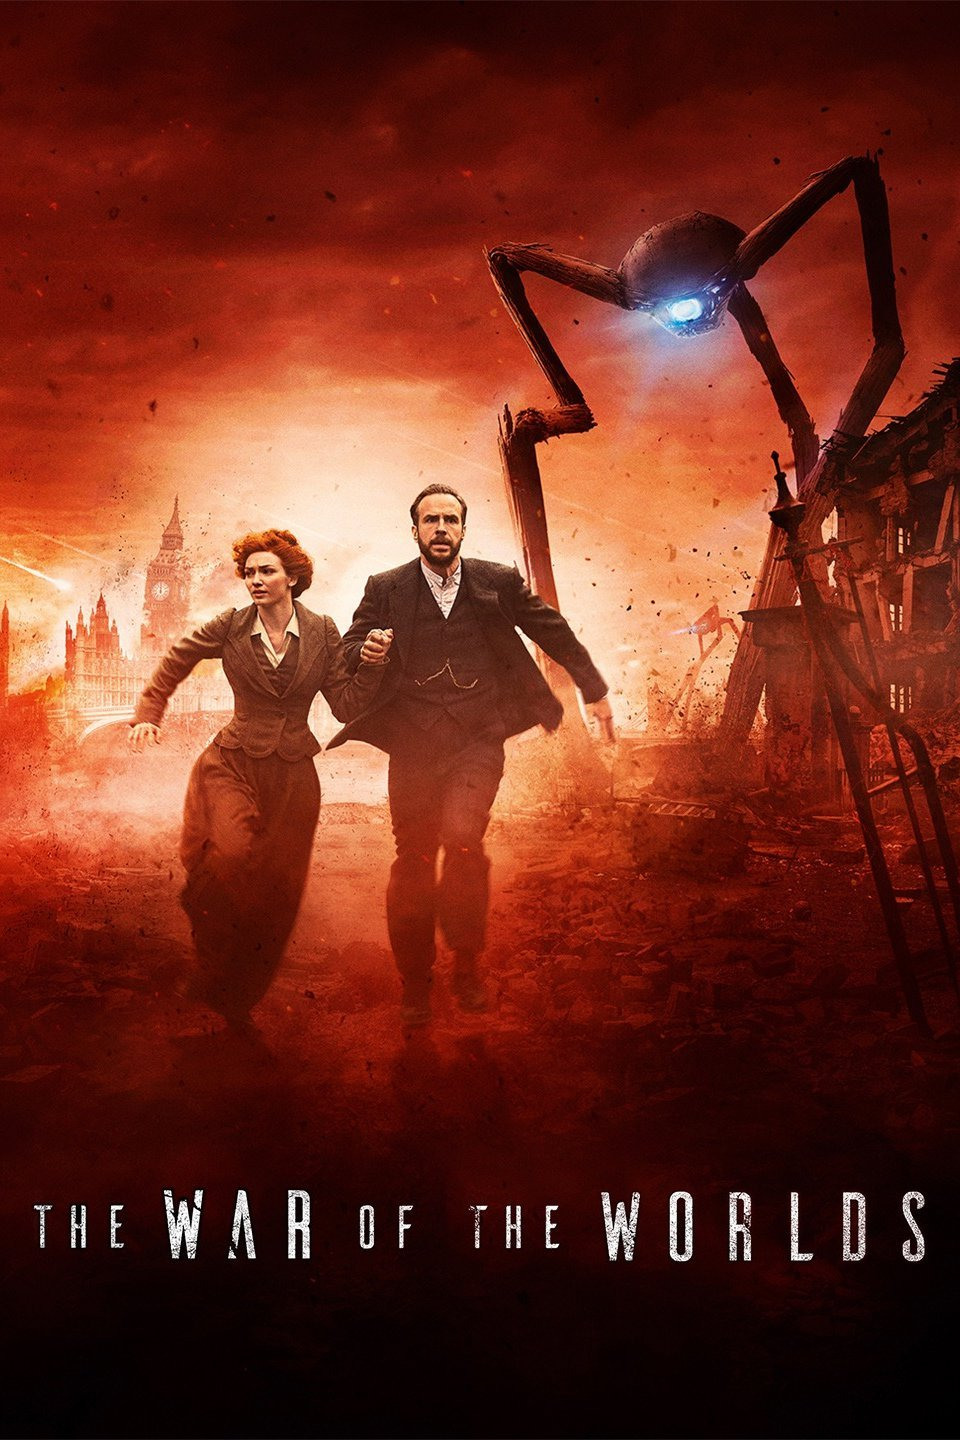 The War of the Worlds kapak